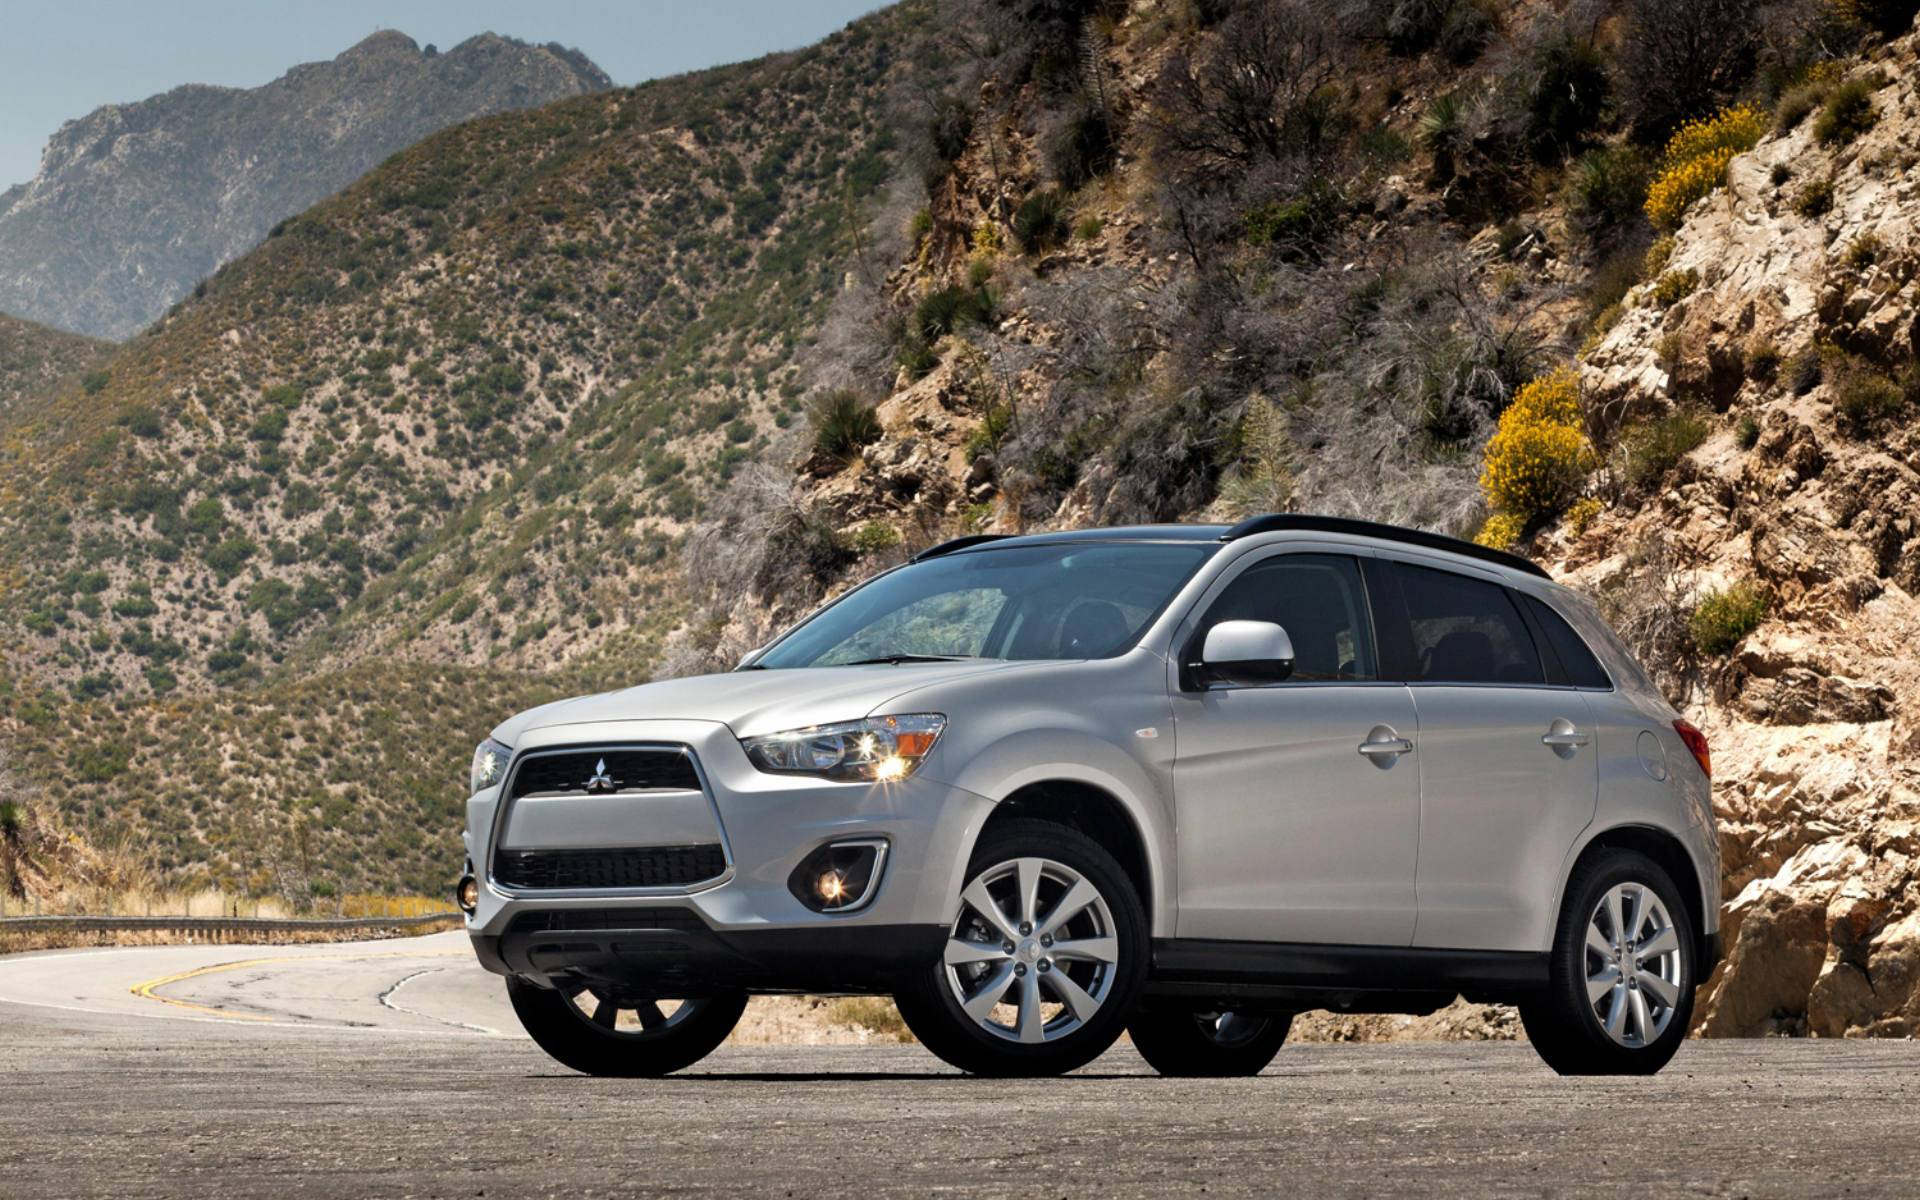 2013 Mitsubishi Outlander Wallpapers - Best Wallpaper